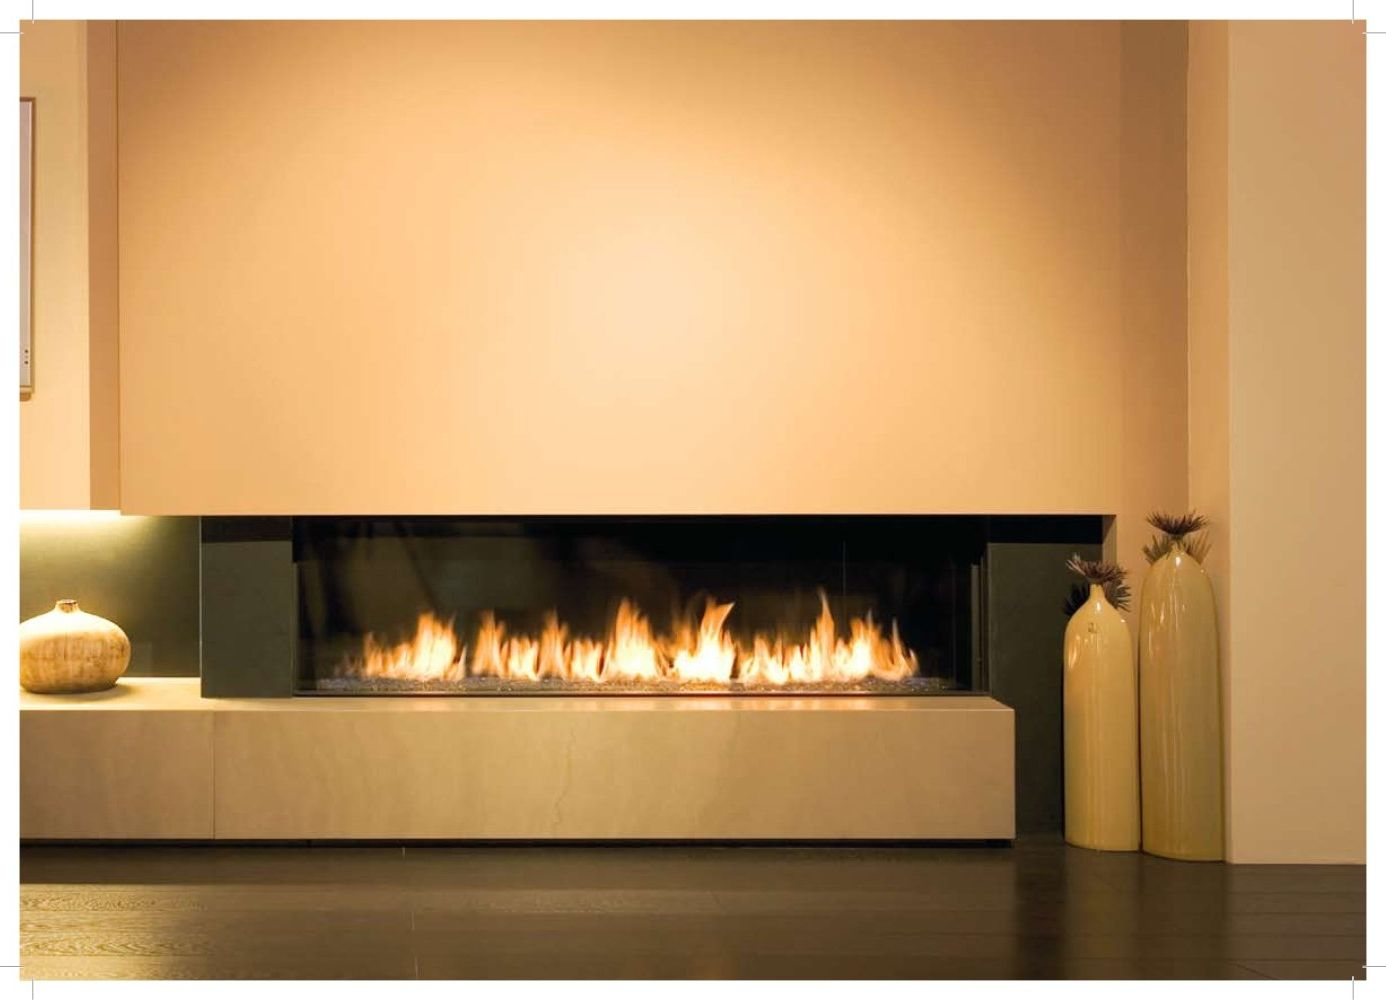 Grand Fireplace Designs Along With Fireplace Designs Fireplace ...